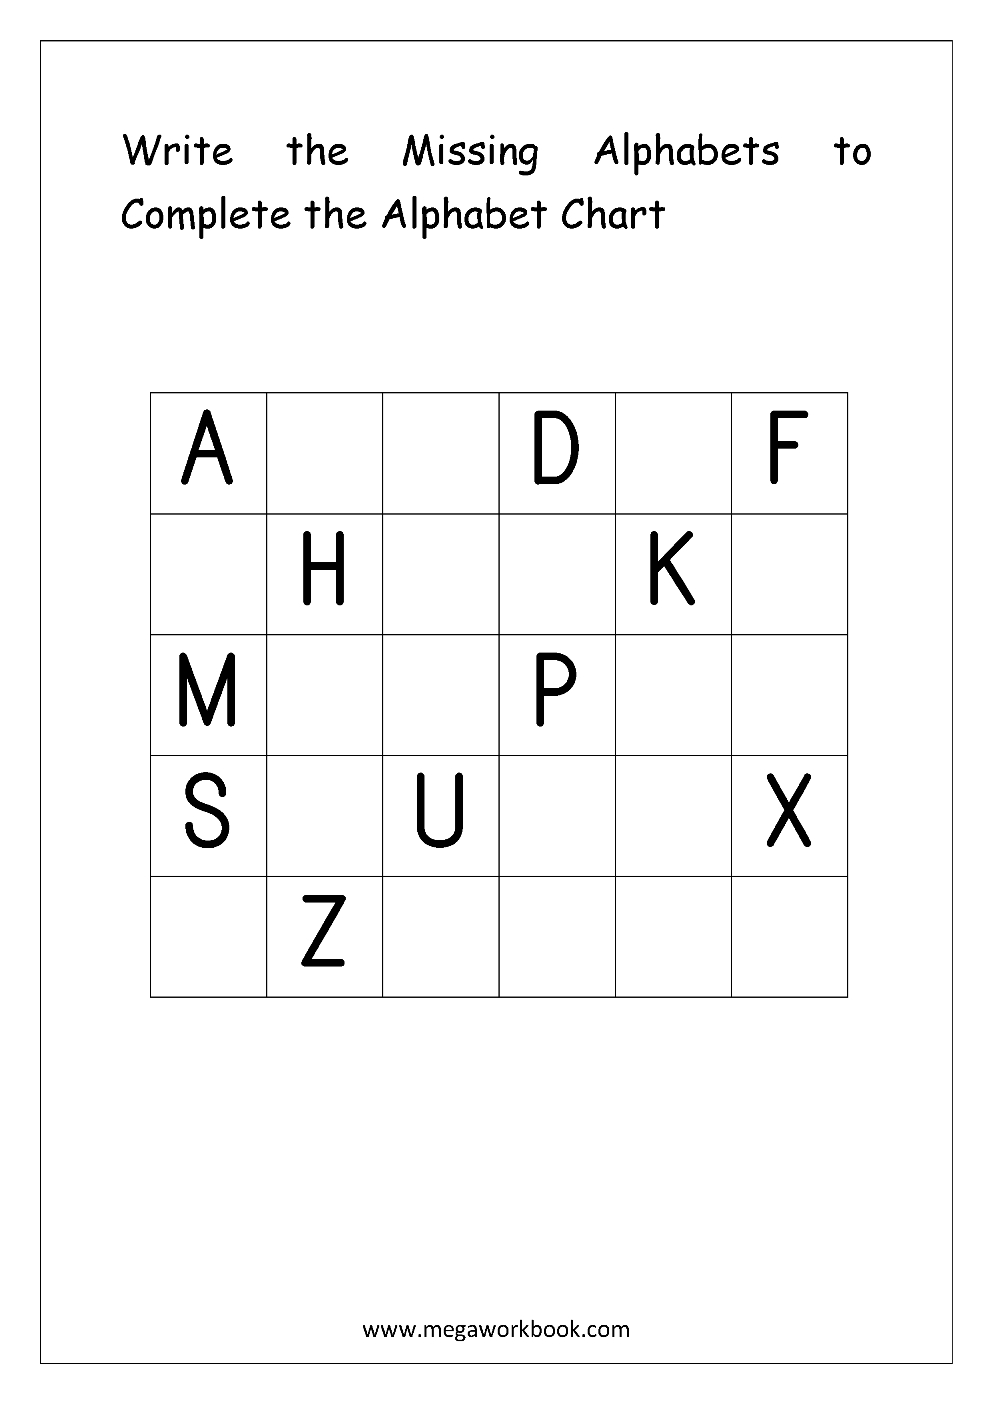 Free English Worksheets - Alphabetical Sequence regarding Alphabet Missing Worksheets